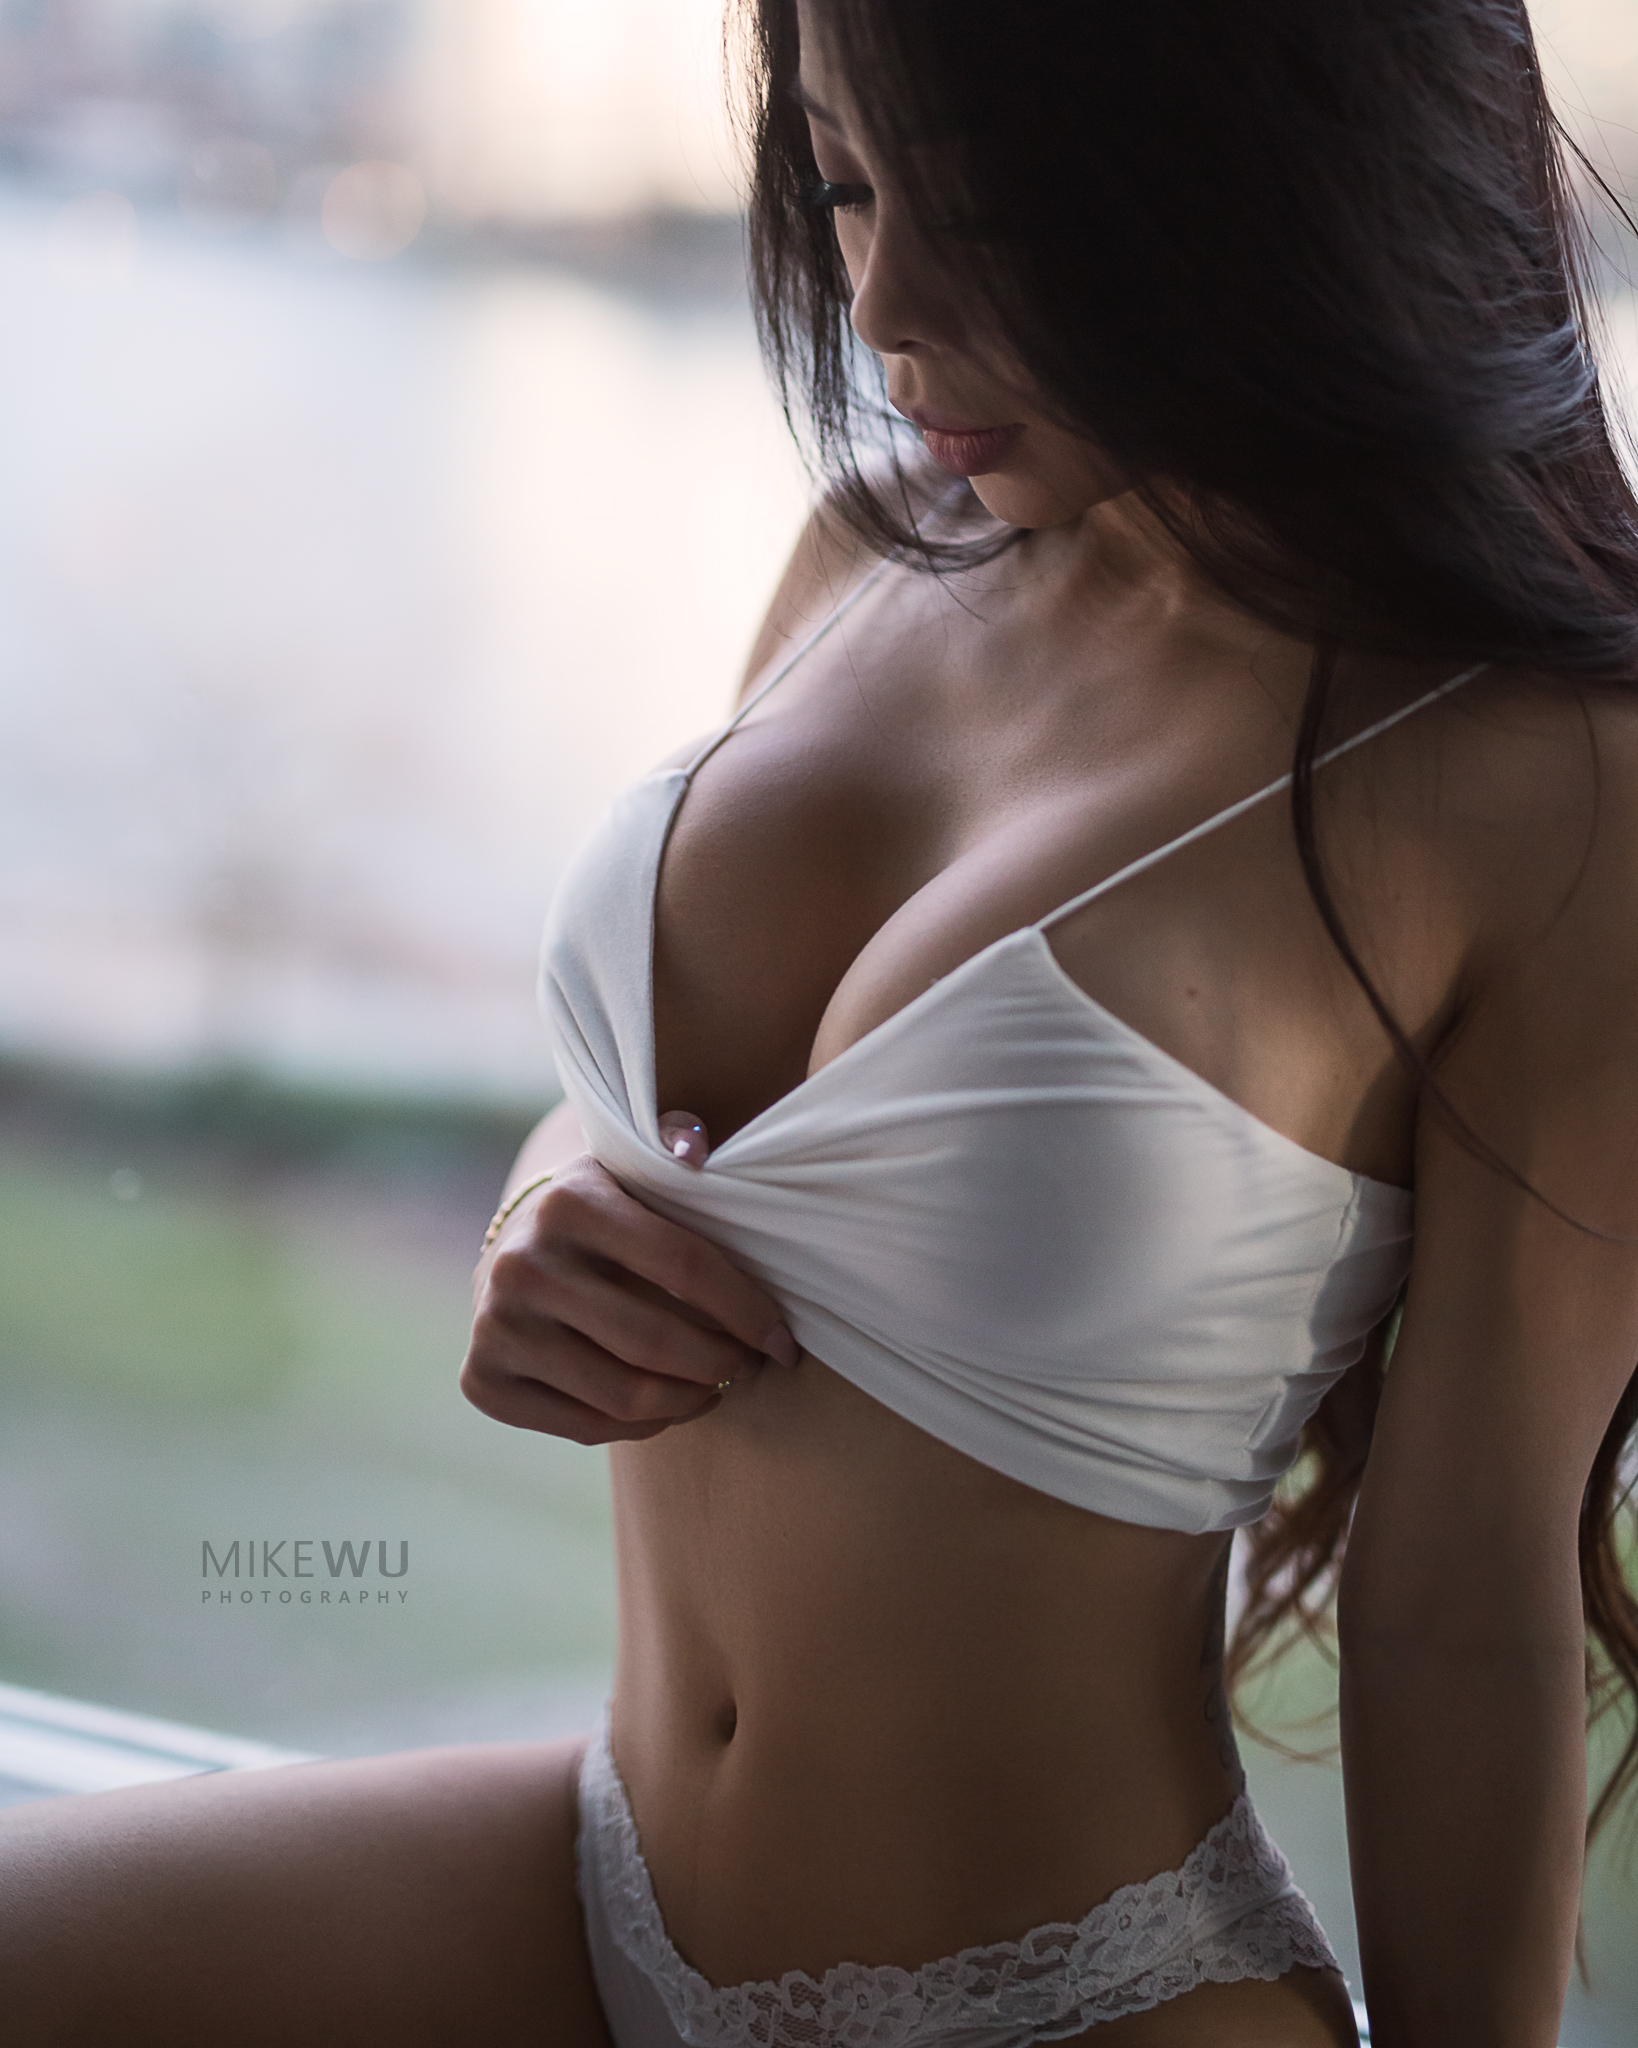 vancouver portrait photographer mike wu, white, crop, panty, lace, window, blue hour, sunset, vancouver, view, beauty, boudoir, portrait, sexy, studio, window light, asian, beauty, seductive, lovely, female, photoshoot, unique, depth, 3d